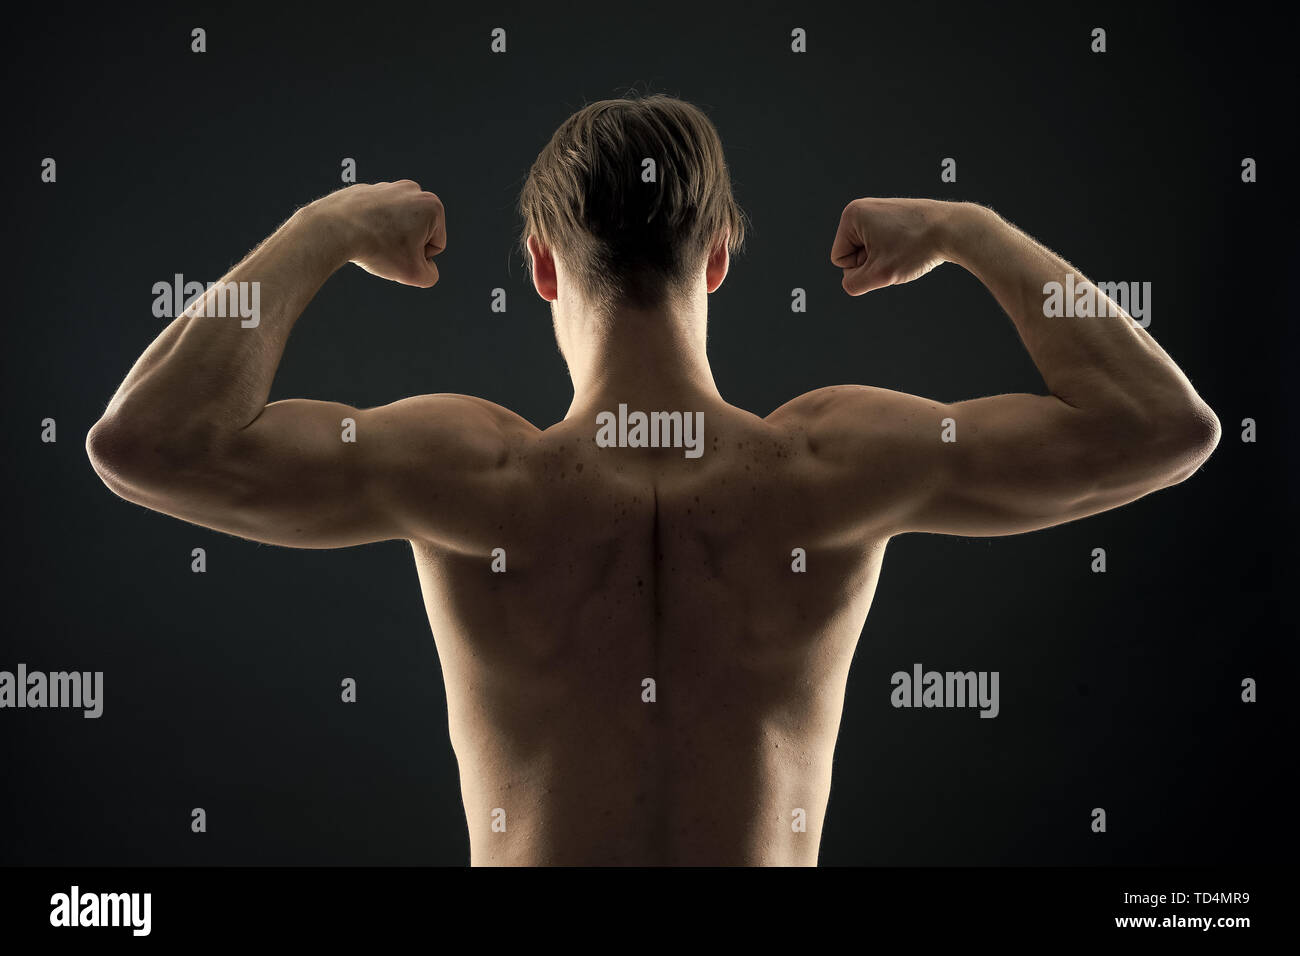 Athlete with fit torso, back view. Man bodybuilder flex arm muscles. Sportsman show biceps and triceps. Workout and training activity in gym. Power and strength concept. - Stock Image